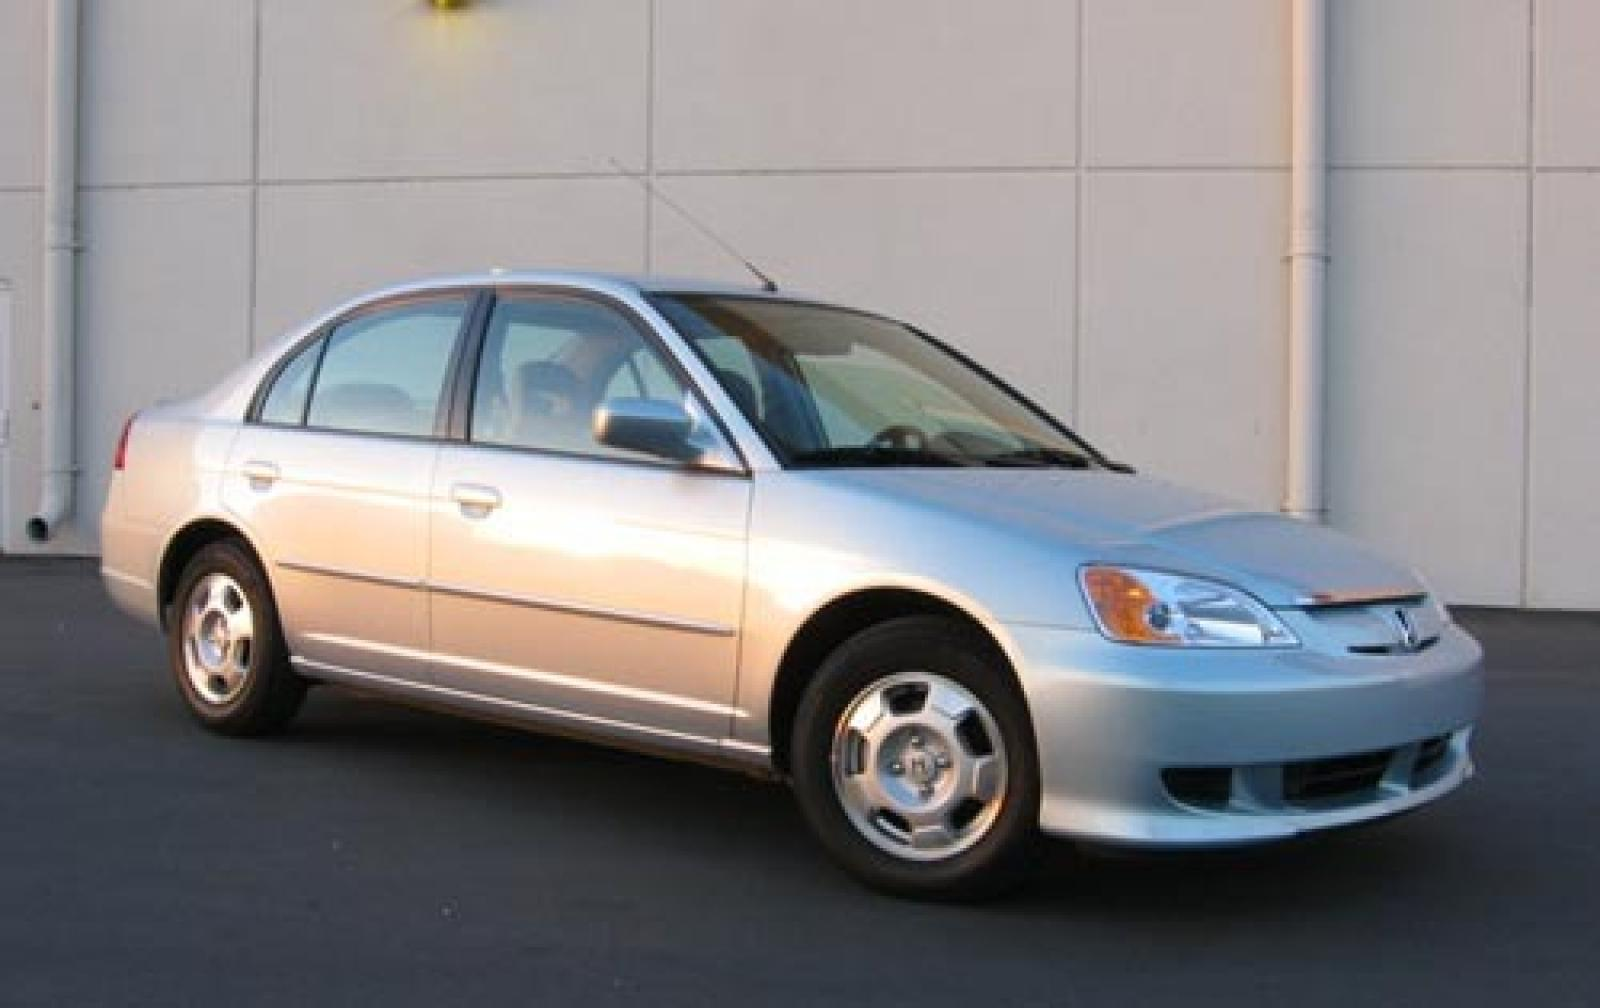 2003 Honda Civic Information And Photos Zombiedrive Hybrid 800 1024 1280 1600 Origin